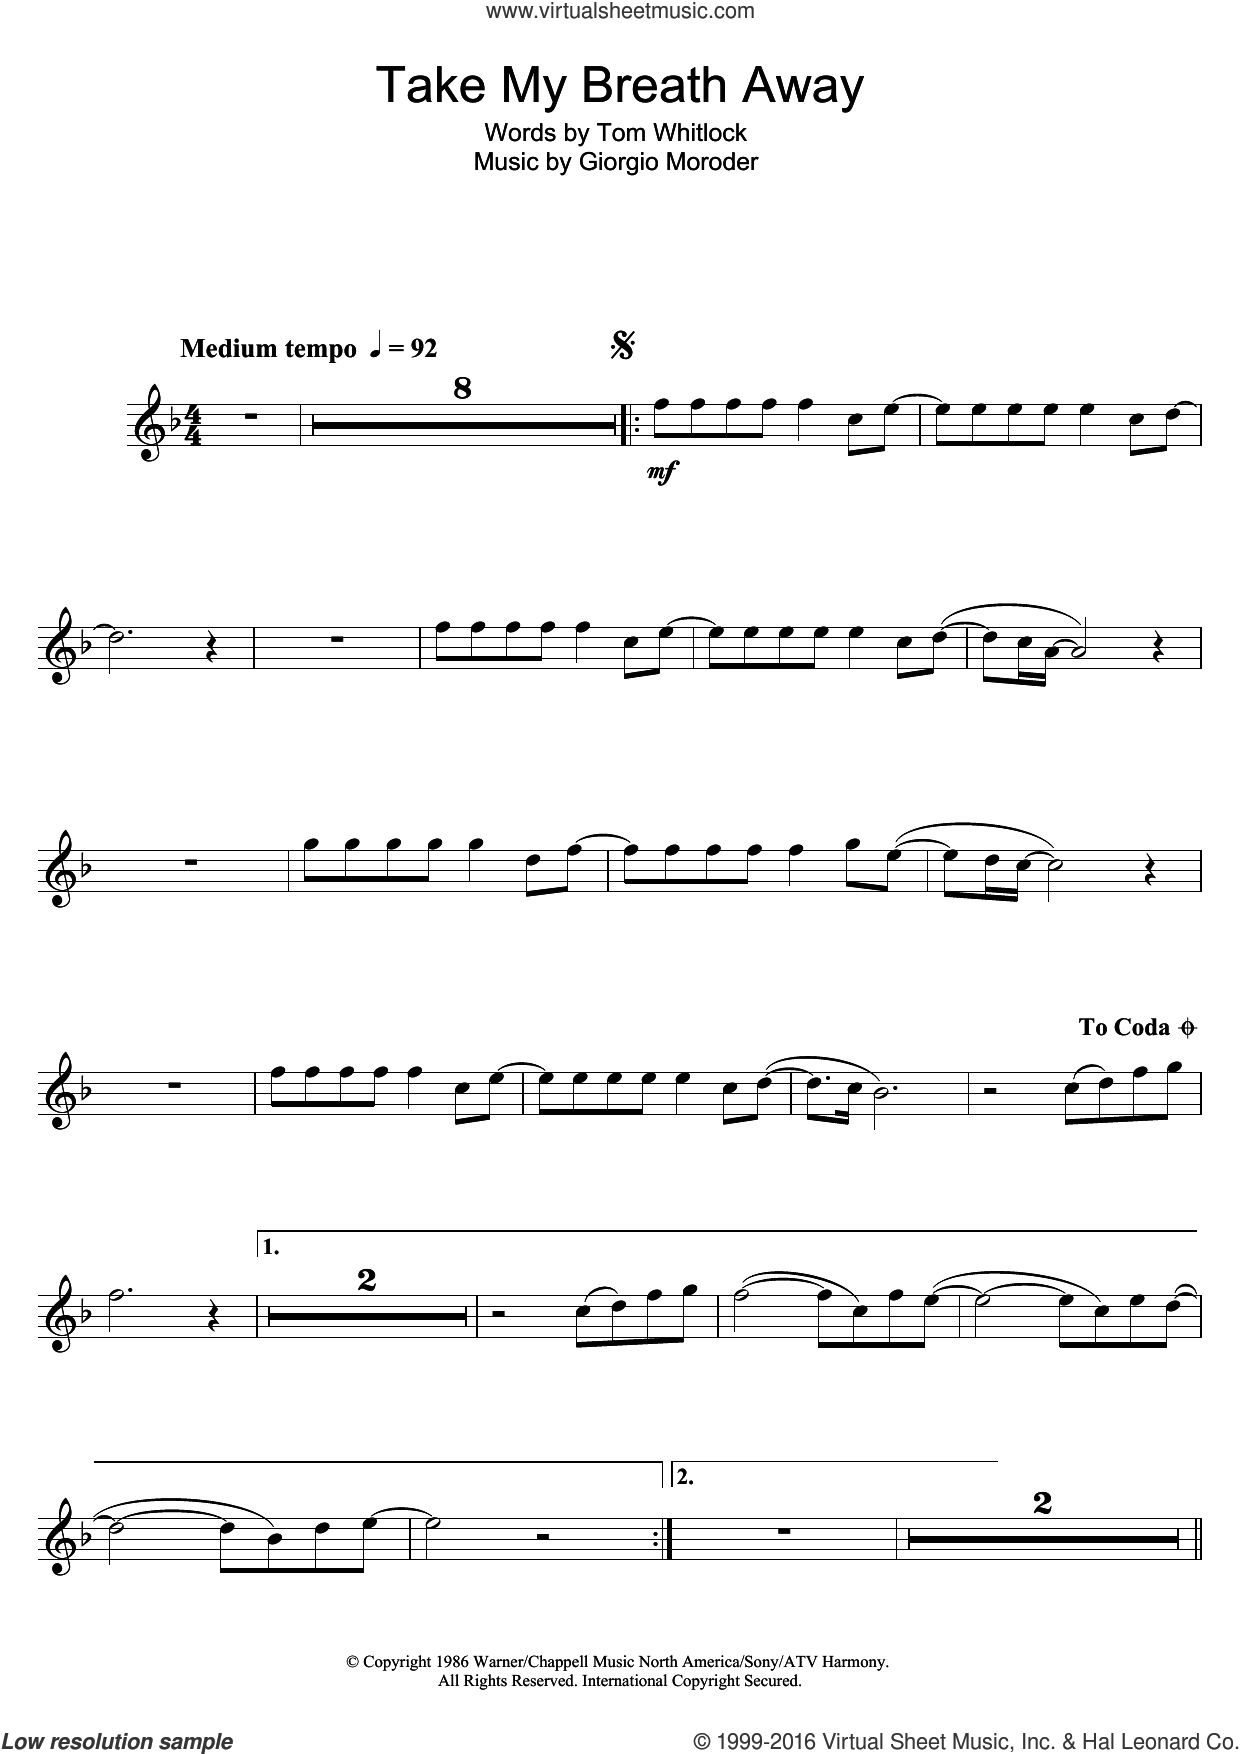 Take My Breath Away sheet music for alto saxophone solo by Berlin, Giorgio Moroder and Tom Whitlock, intermediate. Score Image Preview.